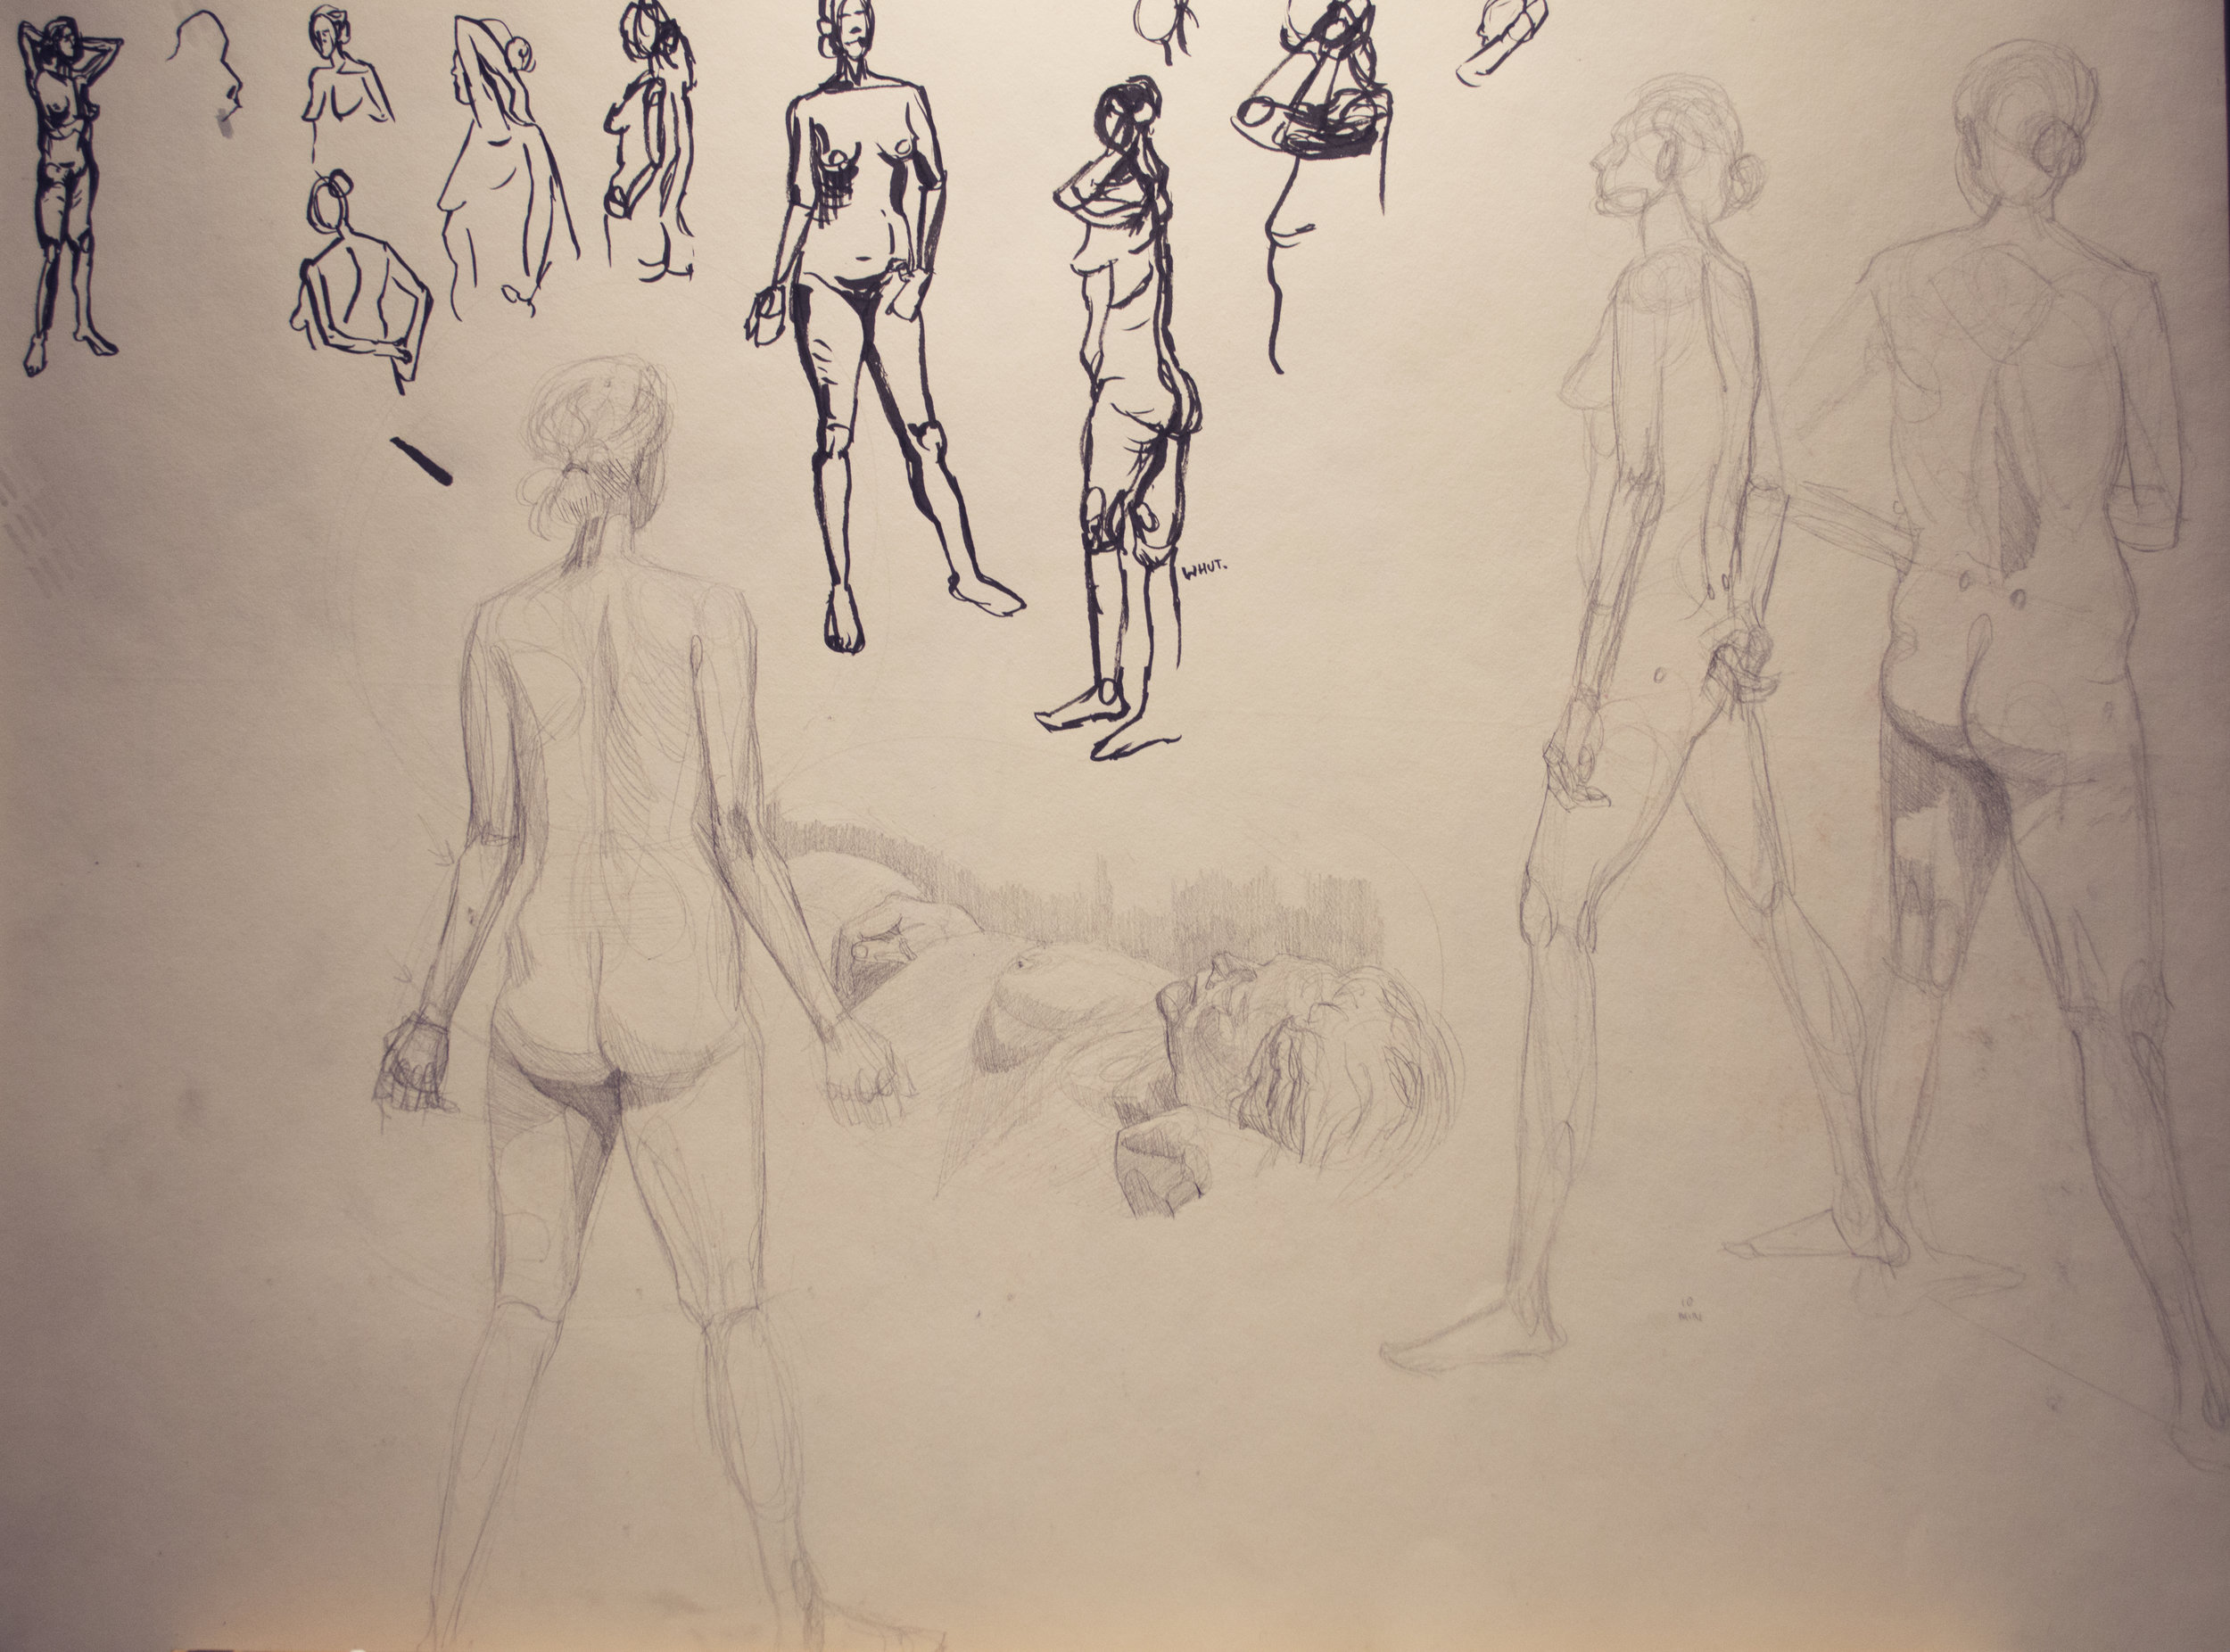 Werner_Levi_Lifedrawing3.jpg